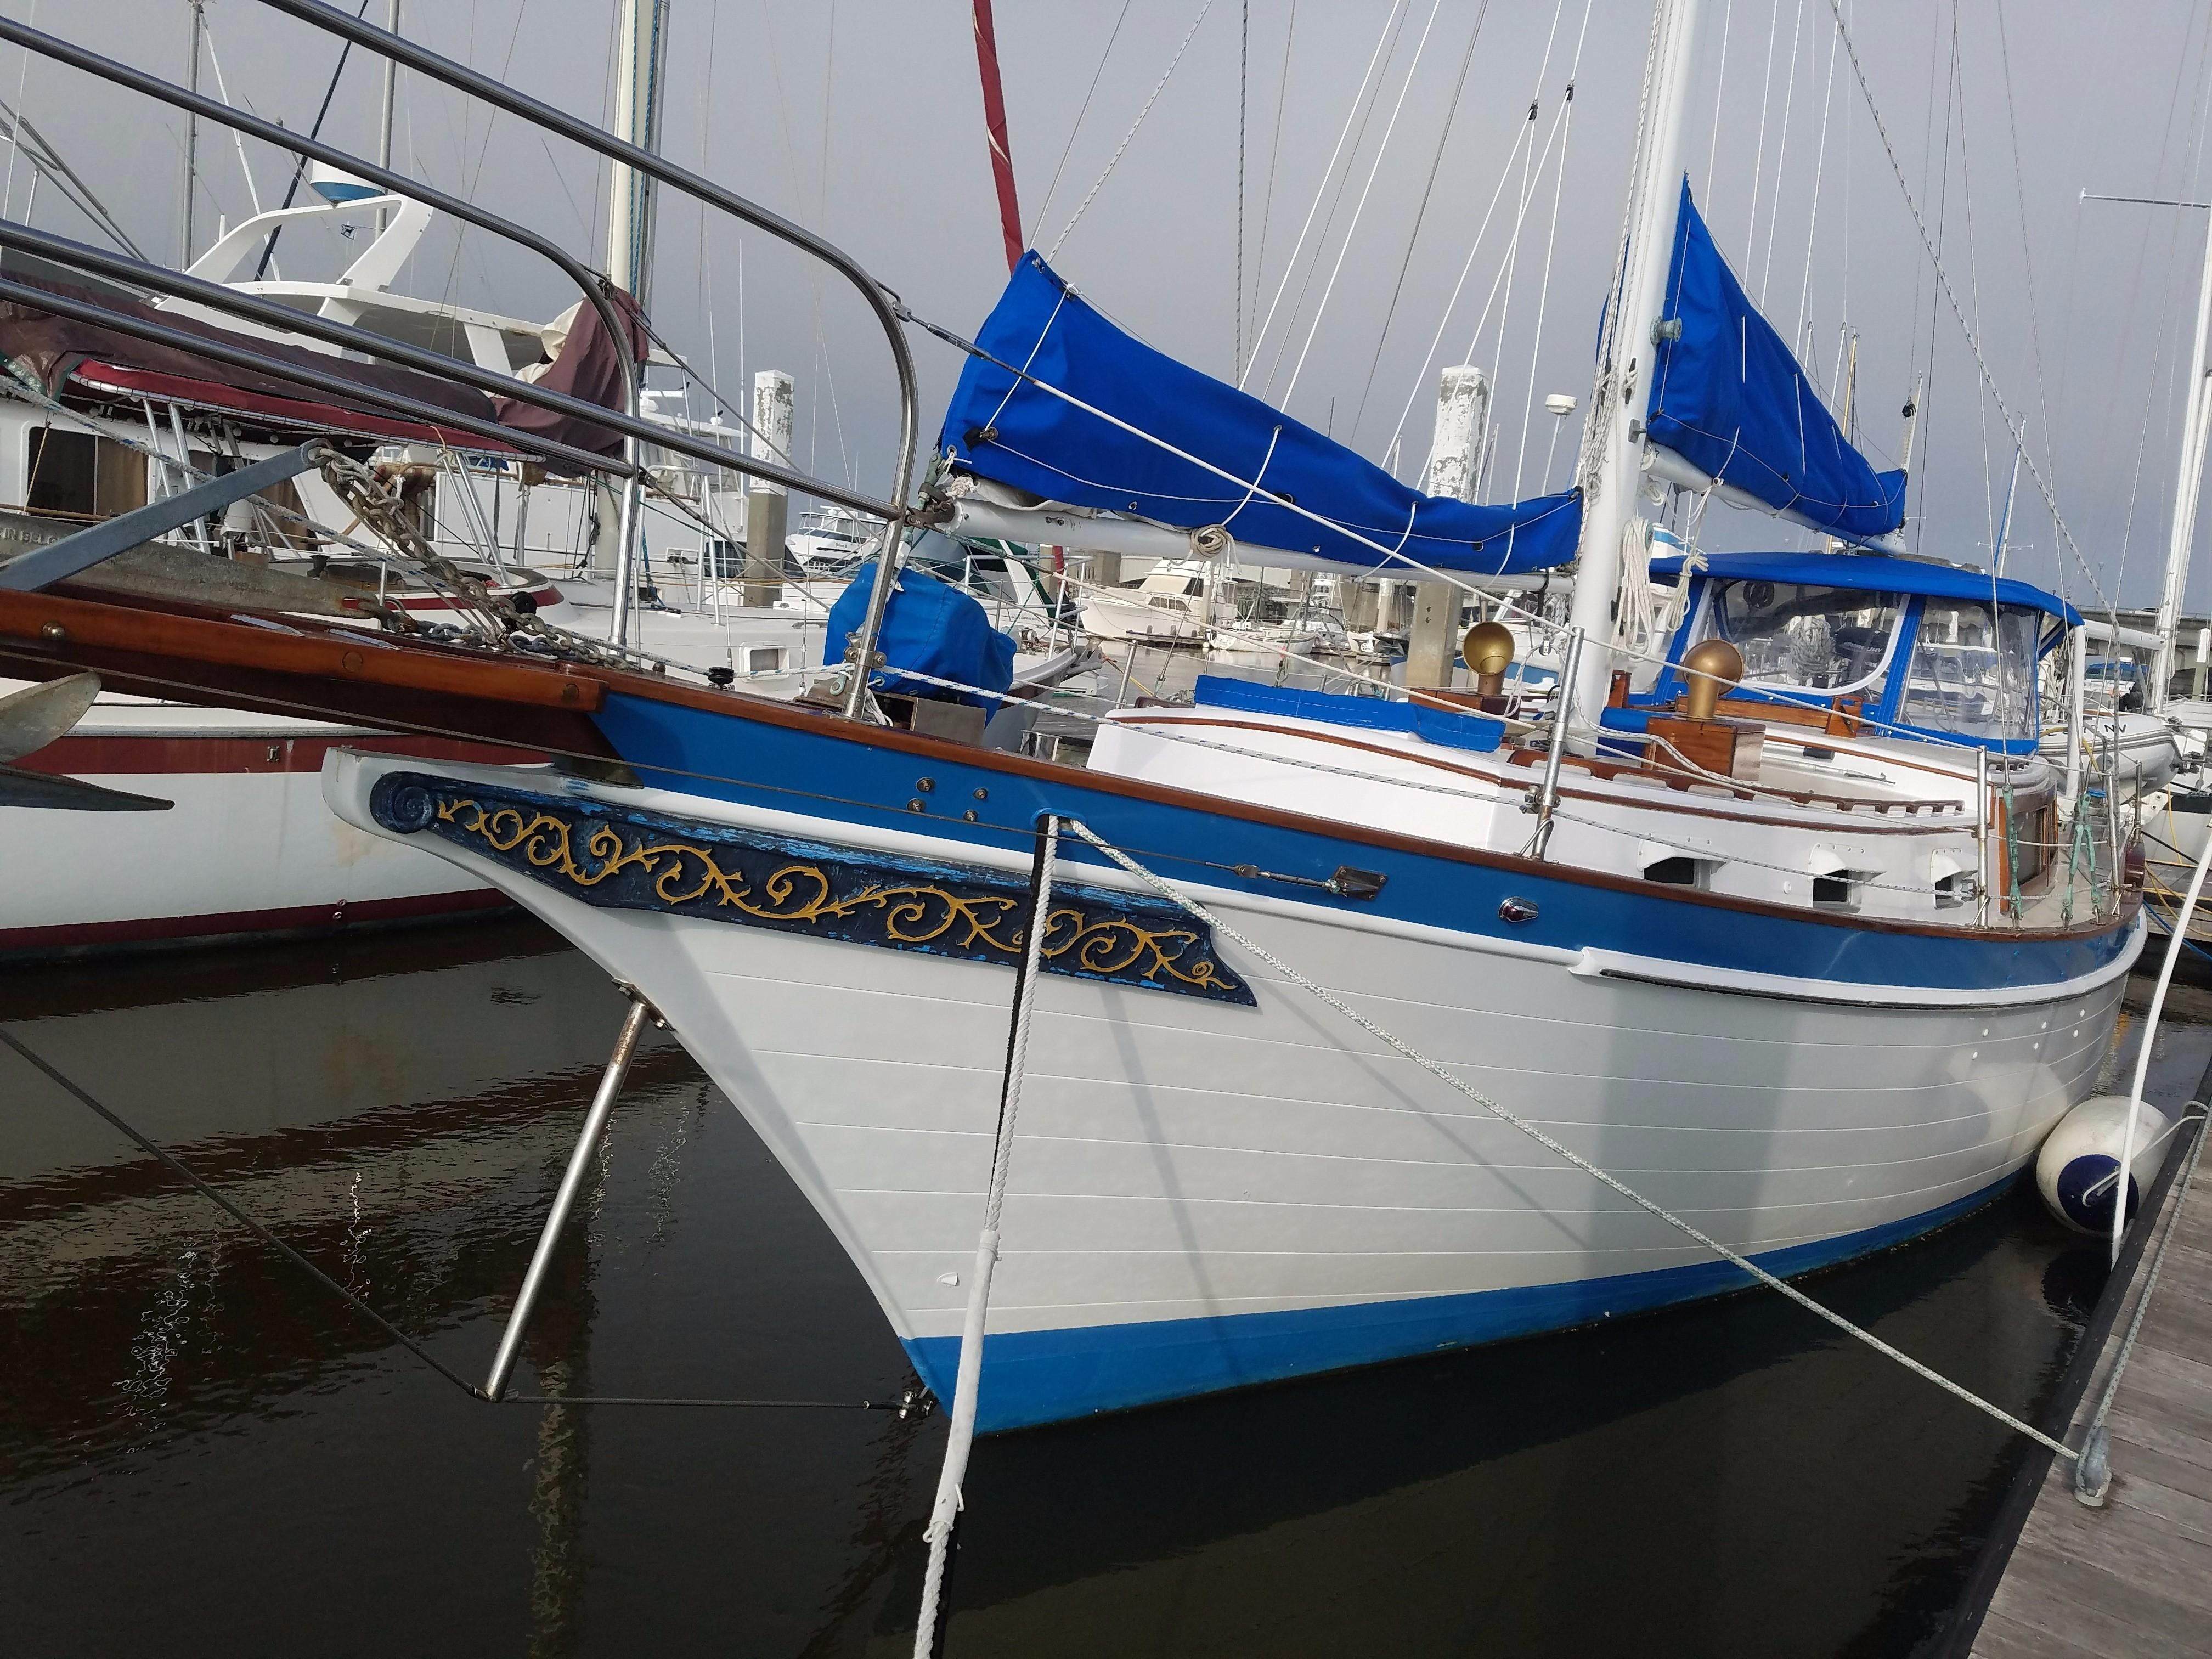 1975 Downeaster 38 Sail Boat For Sale Www Yachtworld Com